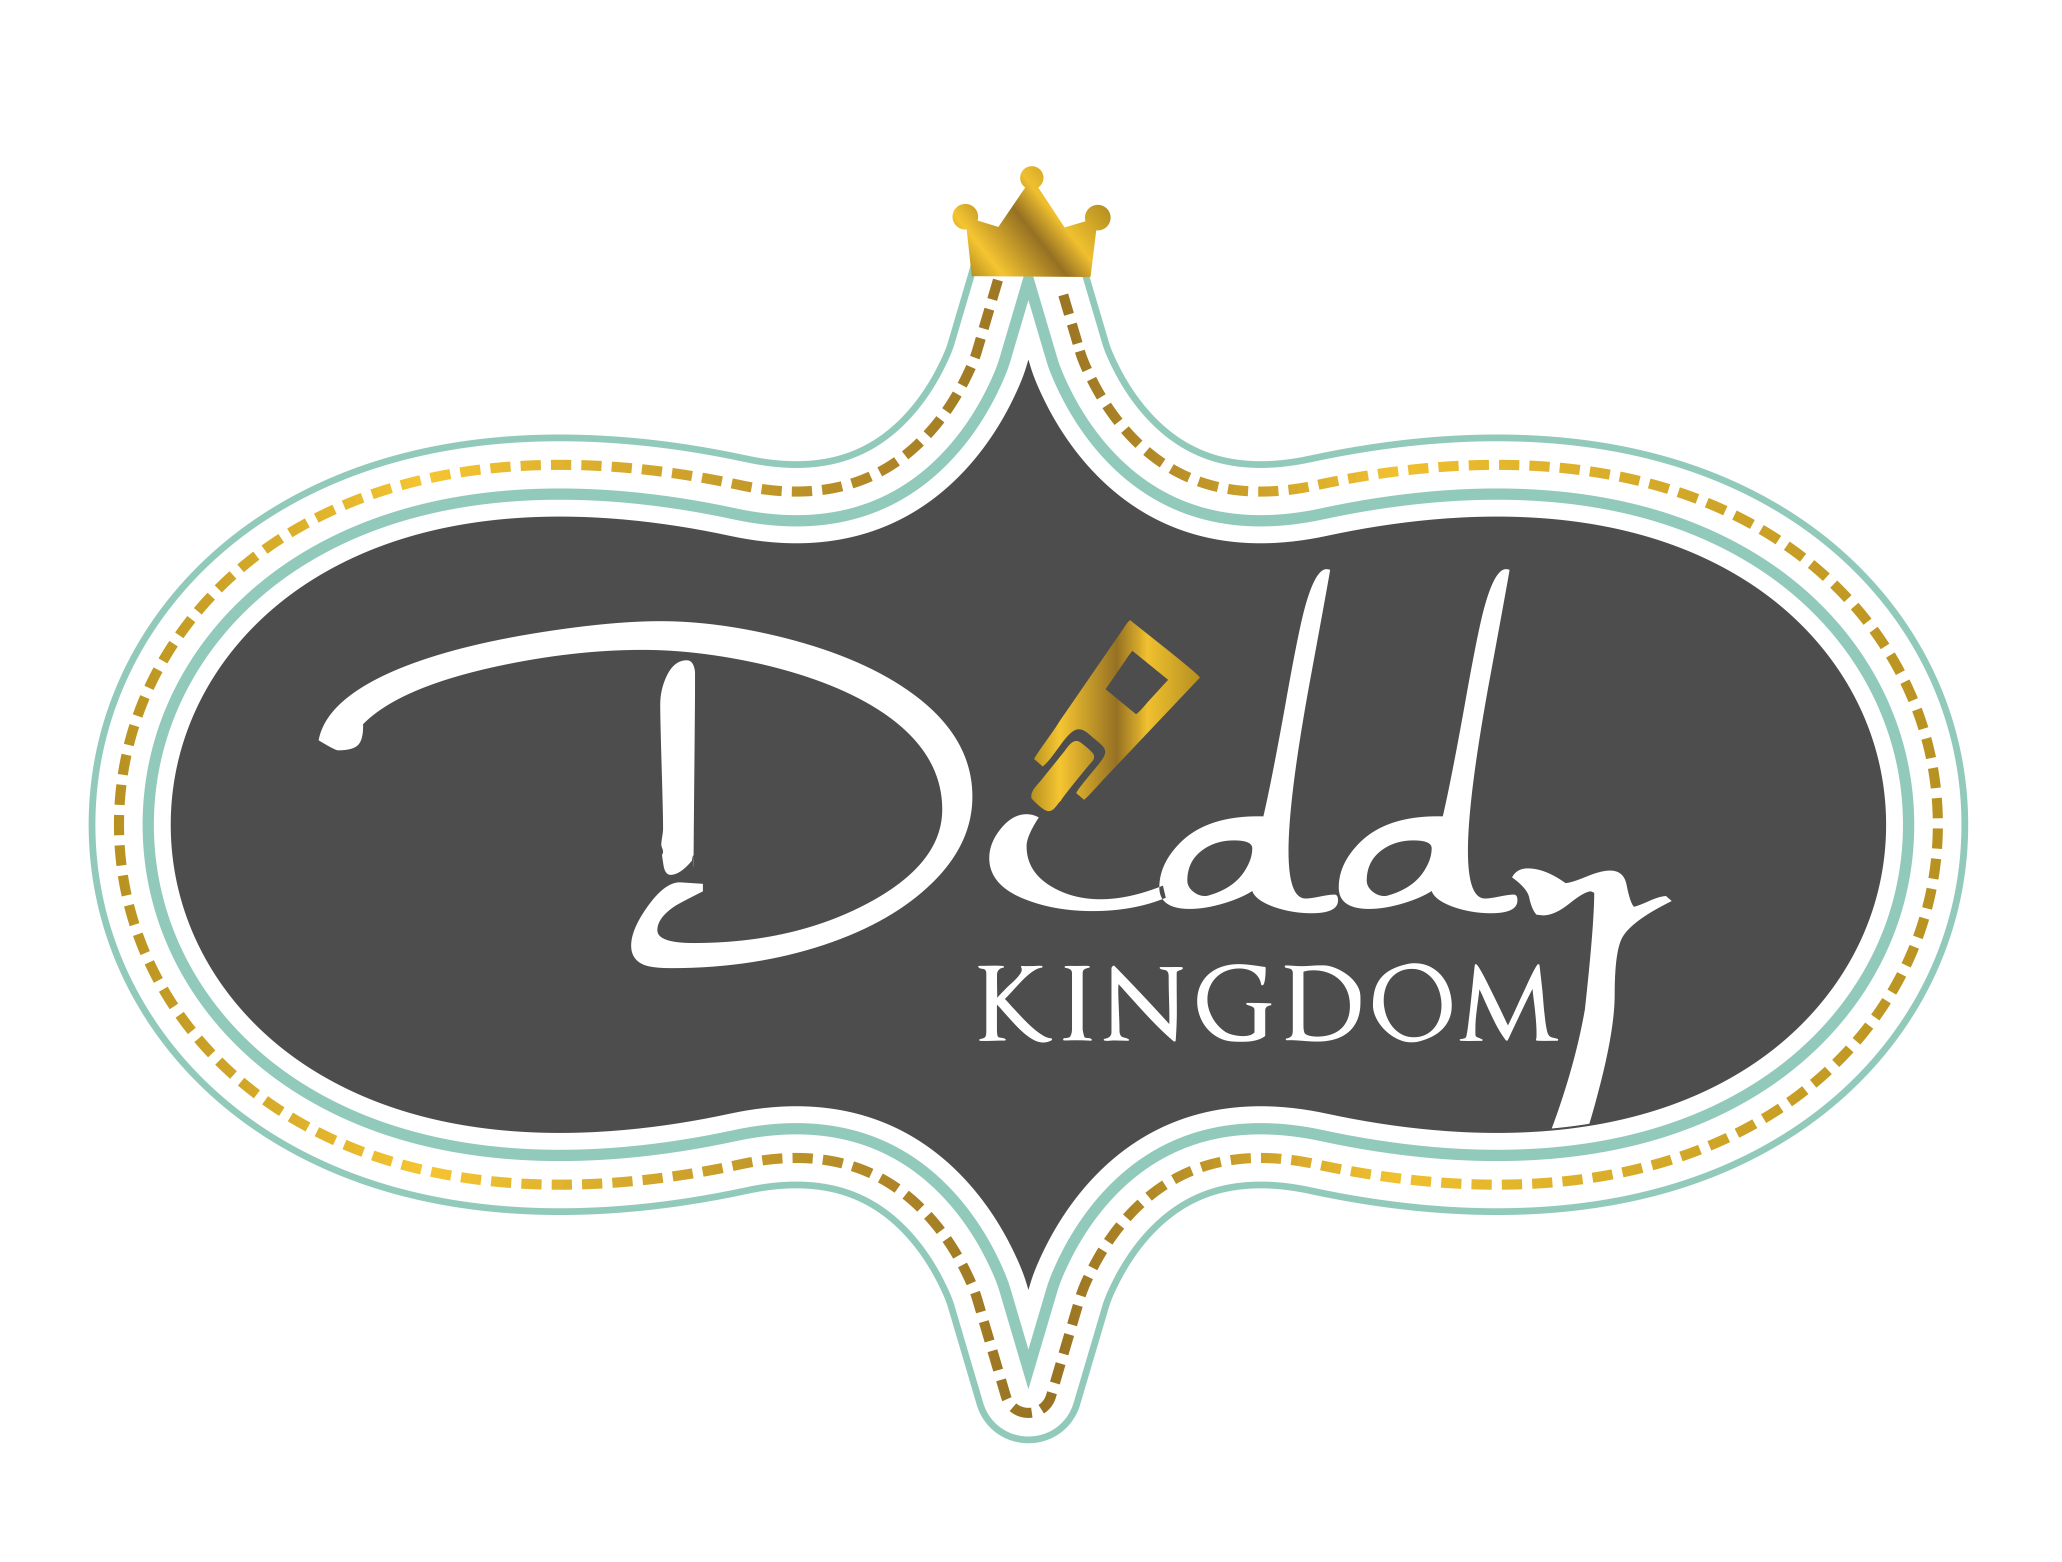 Diddy Kingdom Clothing